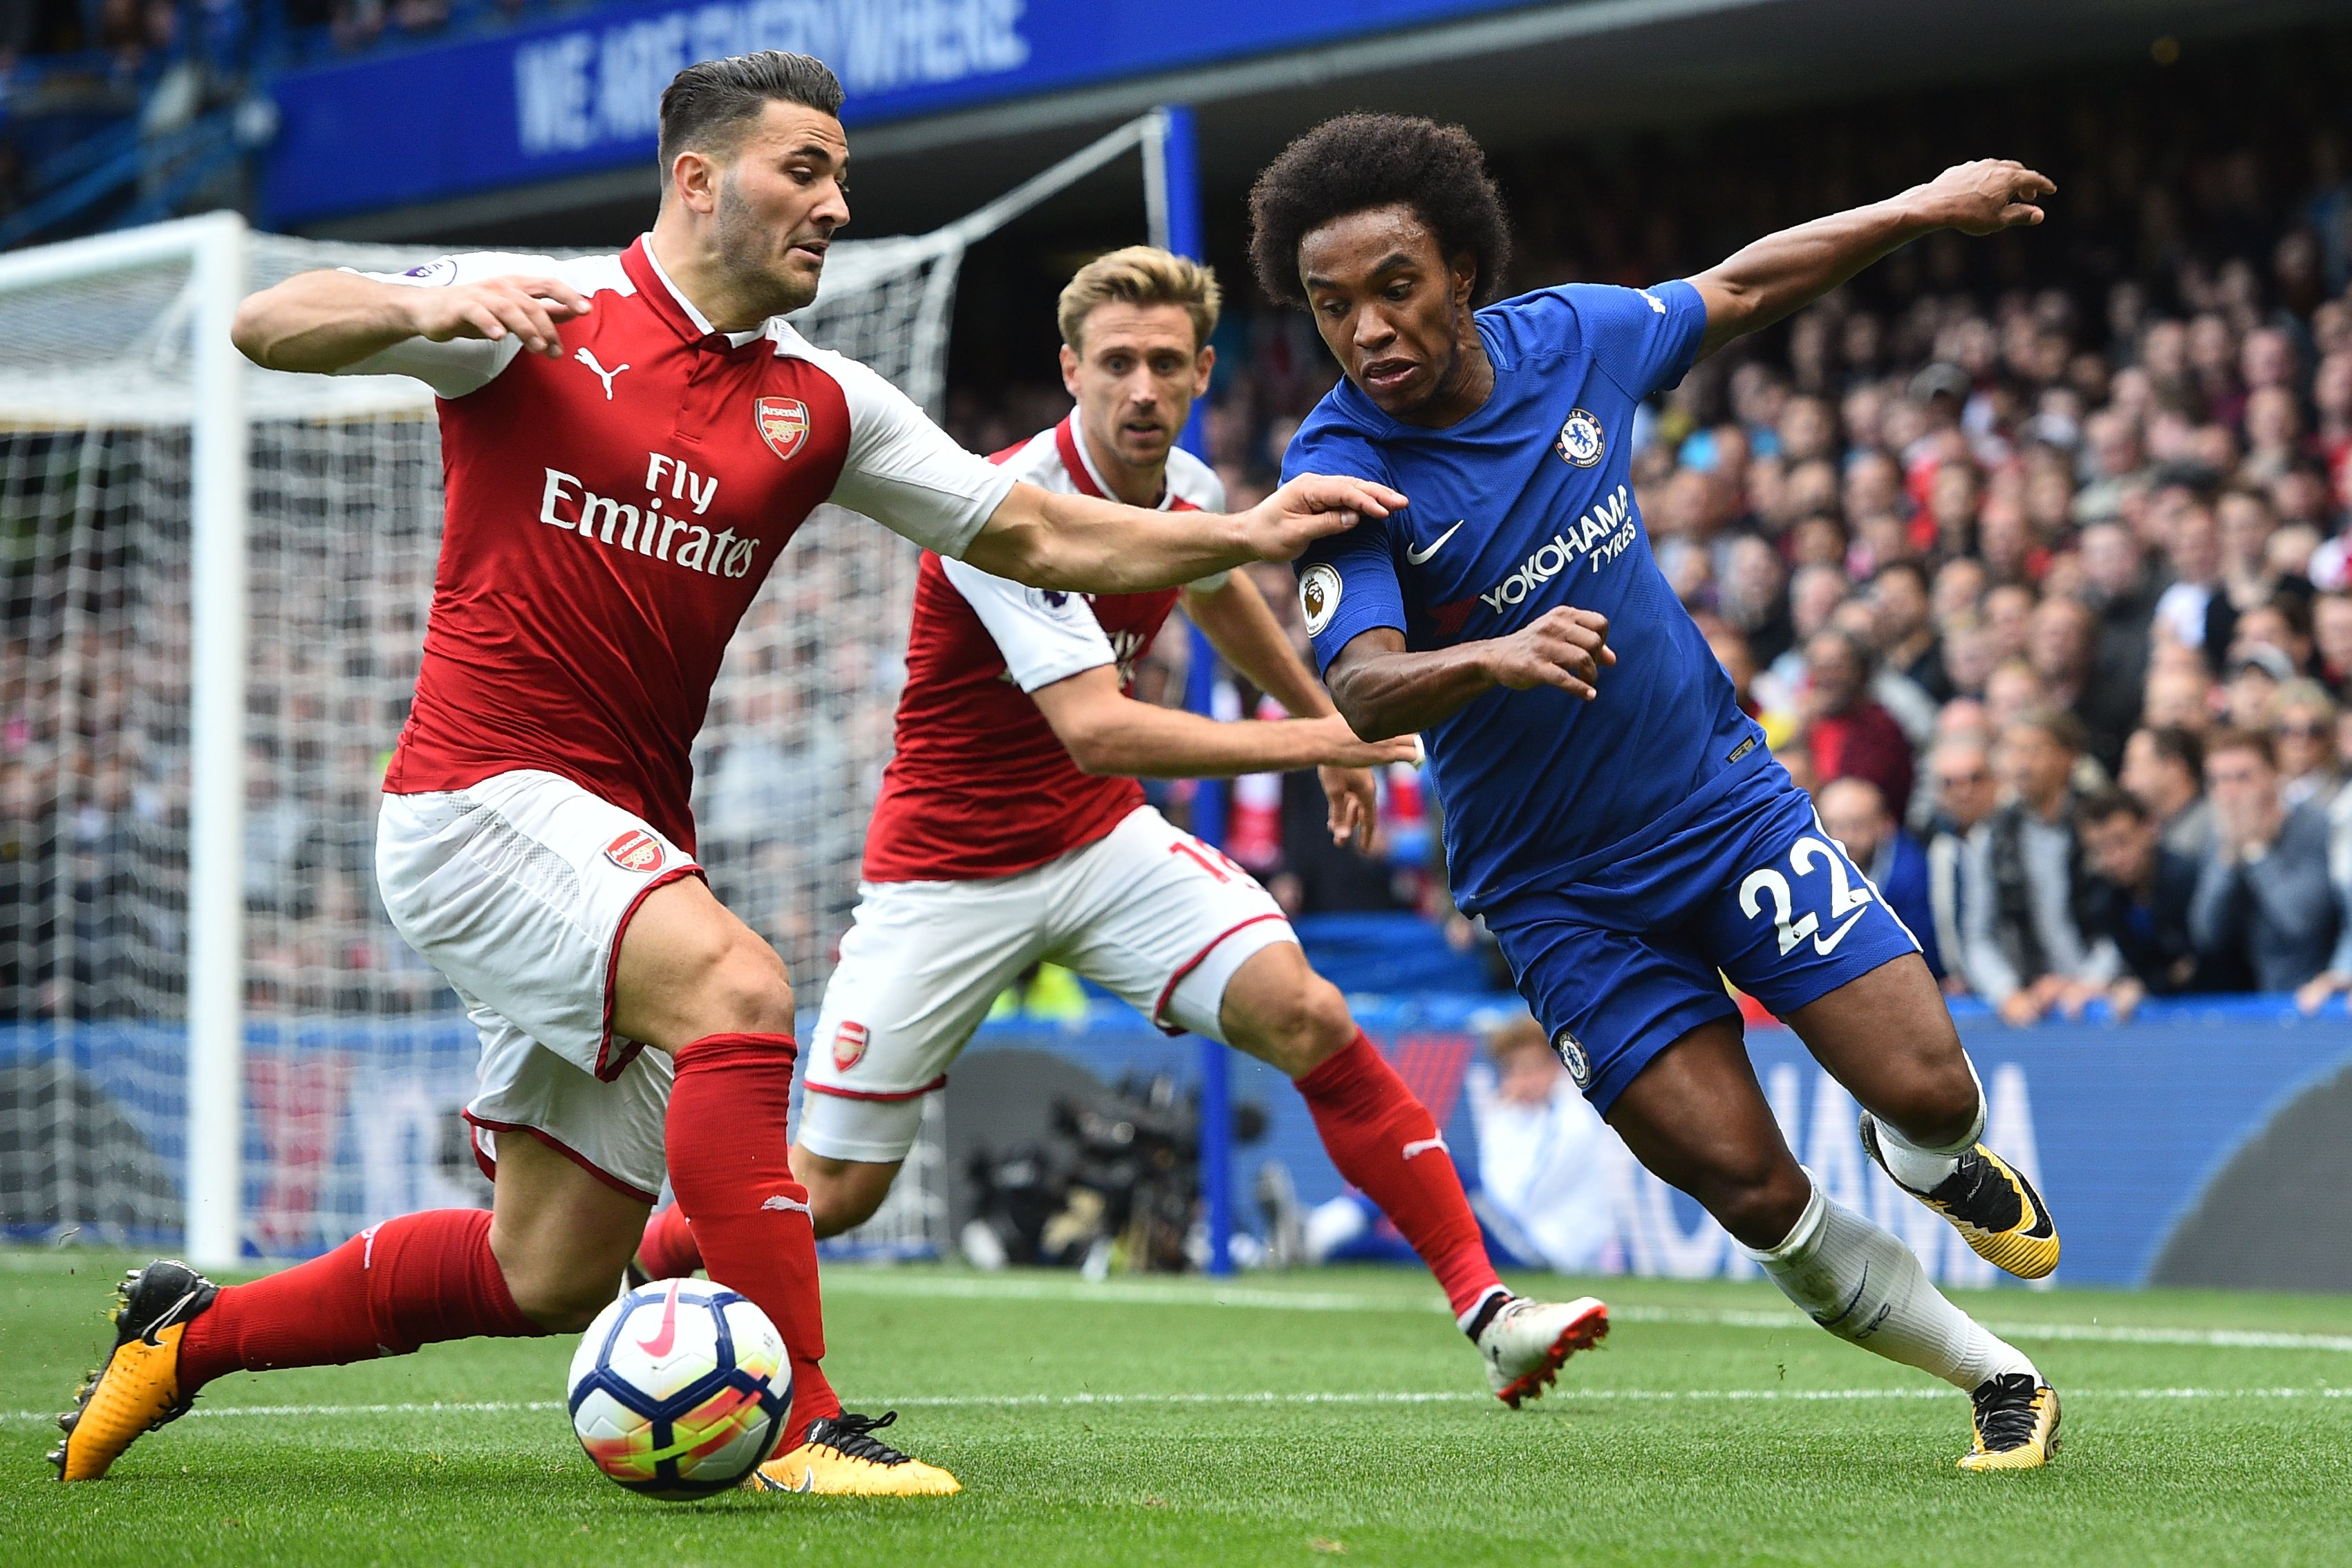 Arsenal's German-born Bosnian defender Sead Kolasinac (L) vies with Chelsea's Brazilian midfielder Willian during the English Premier League football match between Chelsea and Arsenal at Stamford Bridge in London on September 17, 2017. / AFP PHOTO / Glyn KIRK / RESTRICTED TO EDITORIAL USE. No use with unauthorized audio, video, data, fixture lists, club/league logos or 'live' services. Online in-match use limited to 75 images, no video emulation. No use in betting, games or single club/league/player publications. / (Photo credit should read GLYN KIRK/AFP/Getty Images)